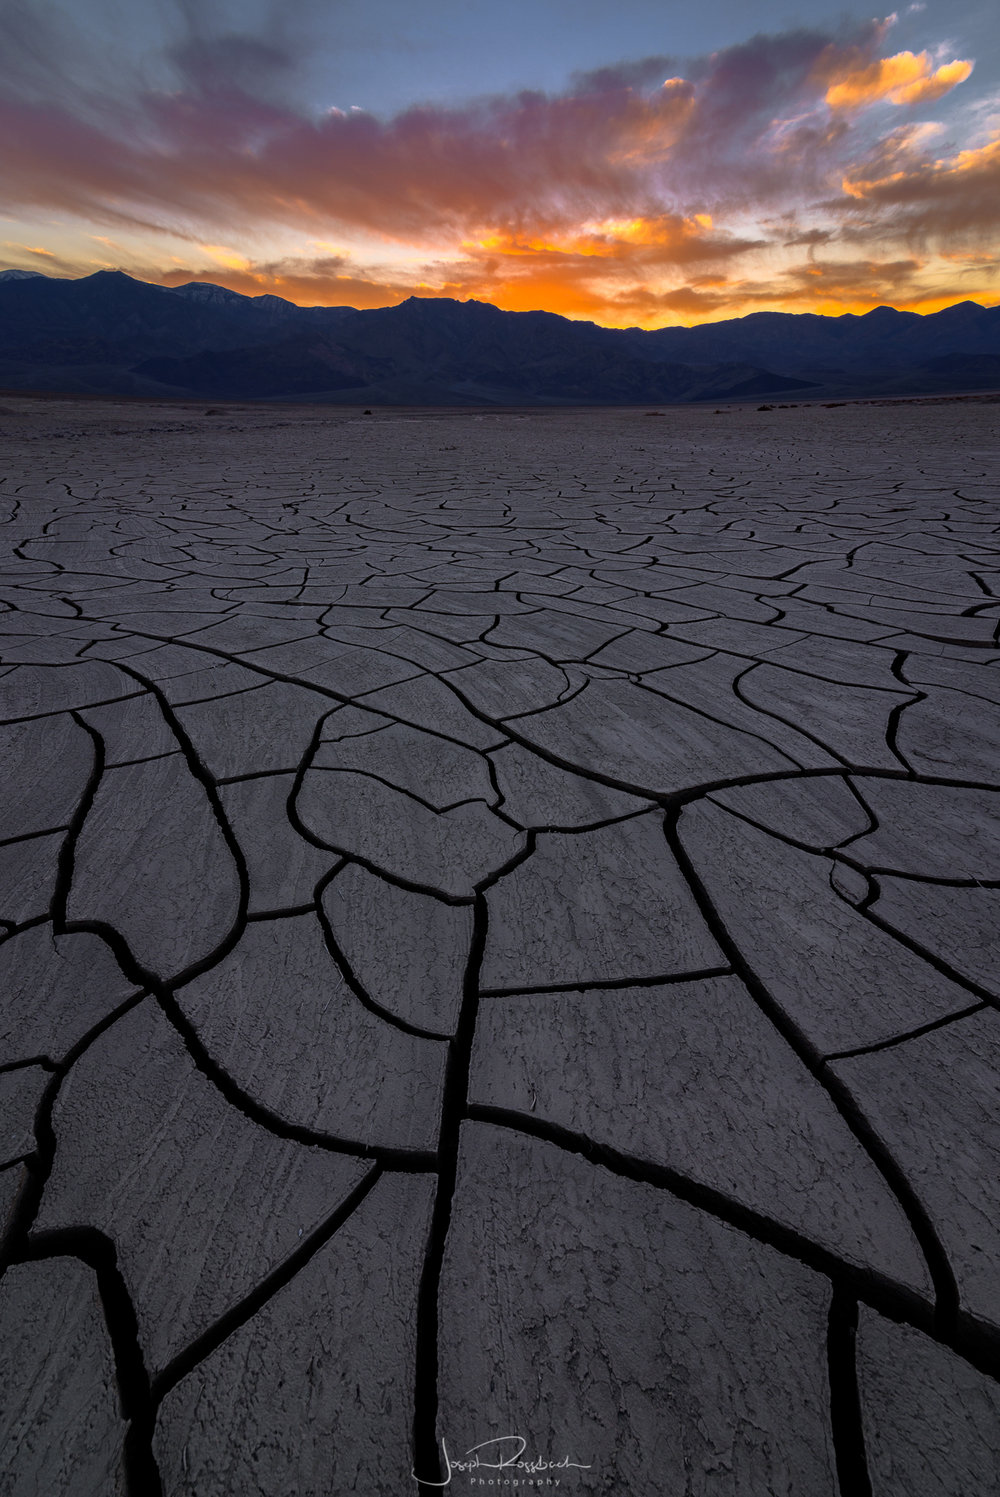 Death Valley & the Eastern Sierra - Death Valley & Owens Valley, CAFebruary 14-19, 2019 | $1,895.00 $500 Deposit Due At Registration